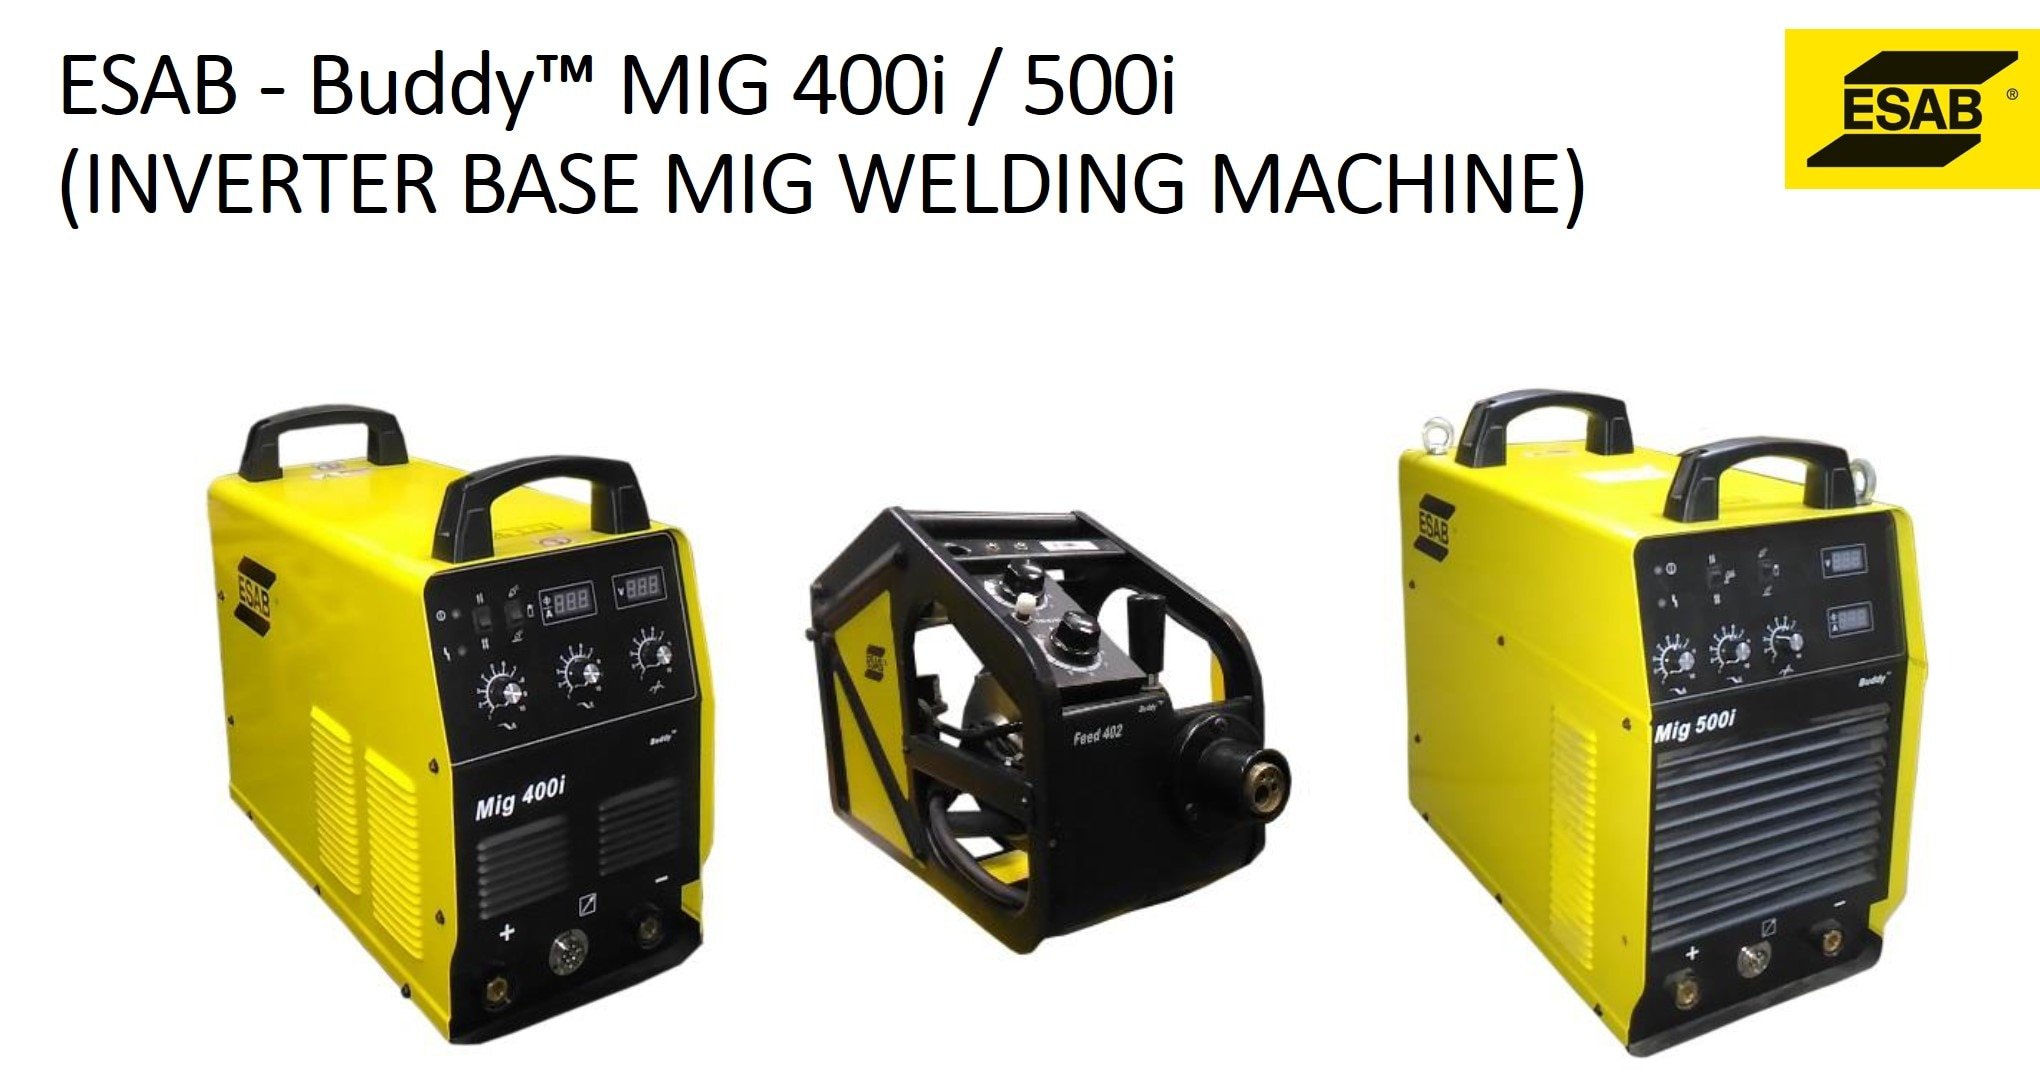 Esab Buddy Mig 400i 500i Inverter Base Welding Machine In Welder Parts Related Keywords Suggestions